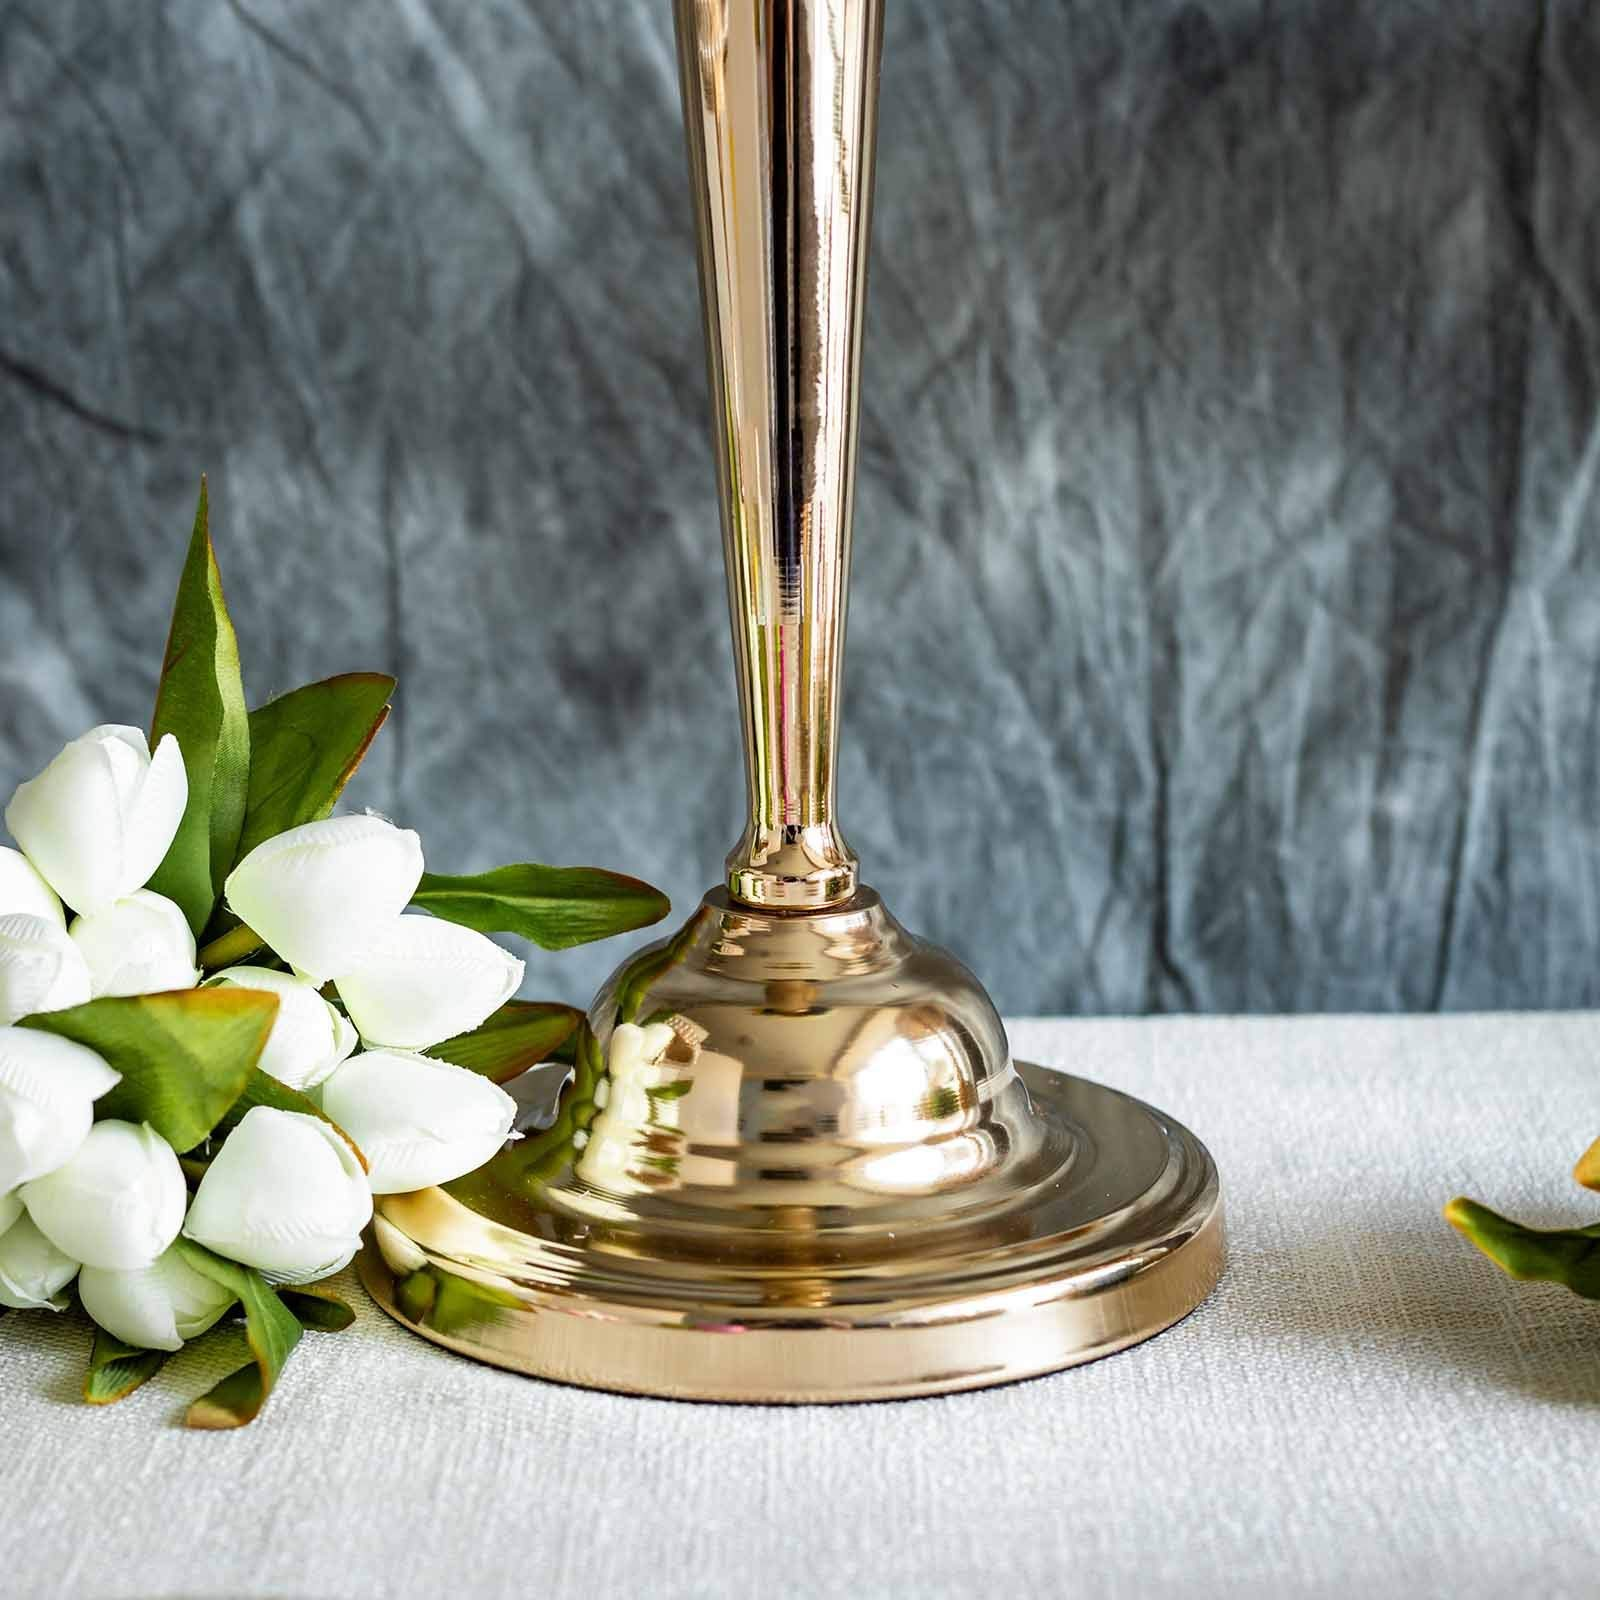 BalsaCircle 2 pcs 29-Inch Tall Gold Metallic Trumpet Vases Candle Holders - Wedding Party Dining Home Centerpieces Decorations by BalsaCircle Centerpieces (Image #2)